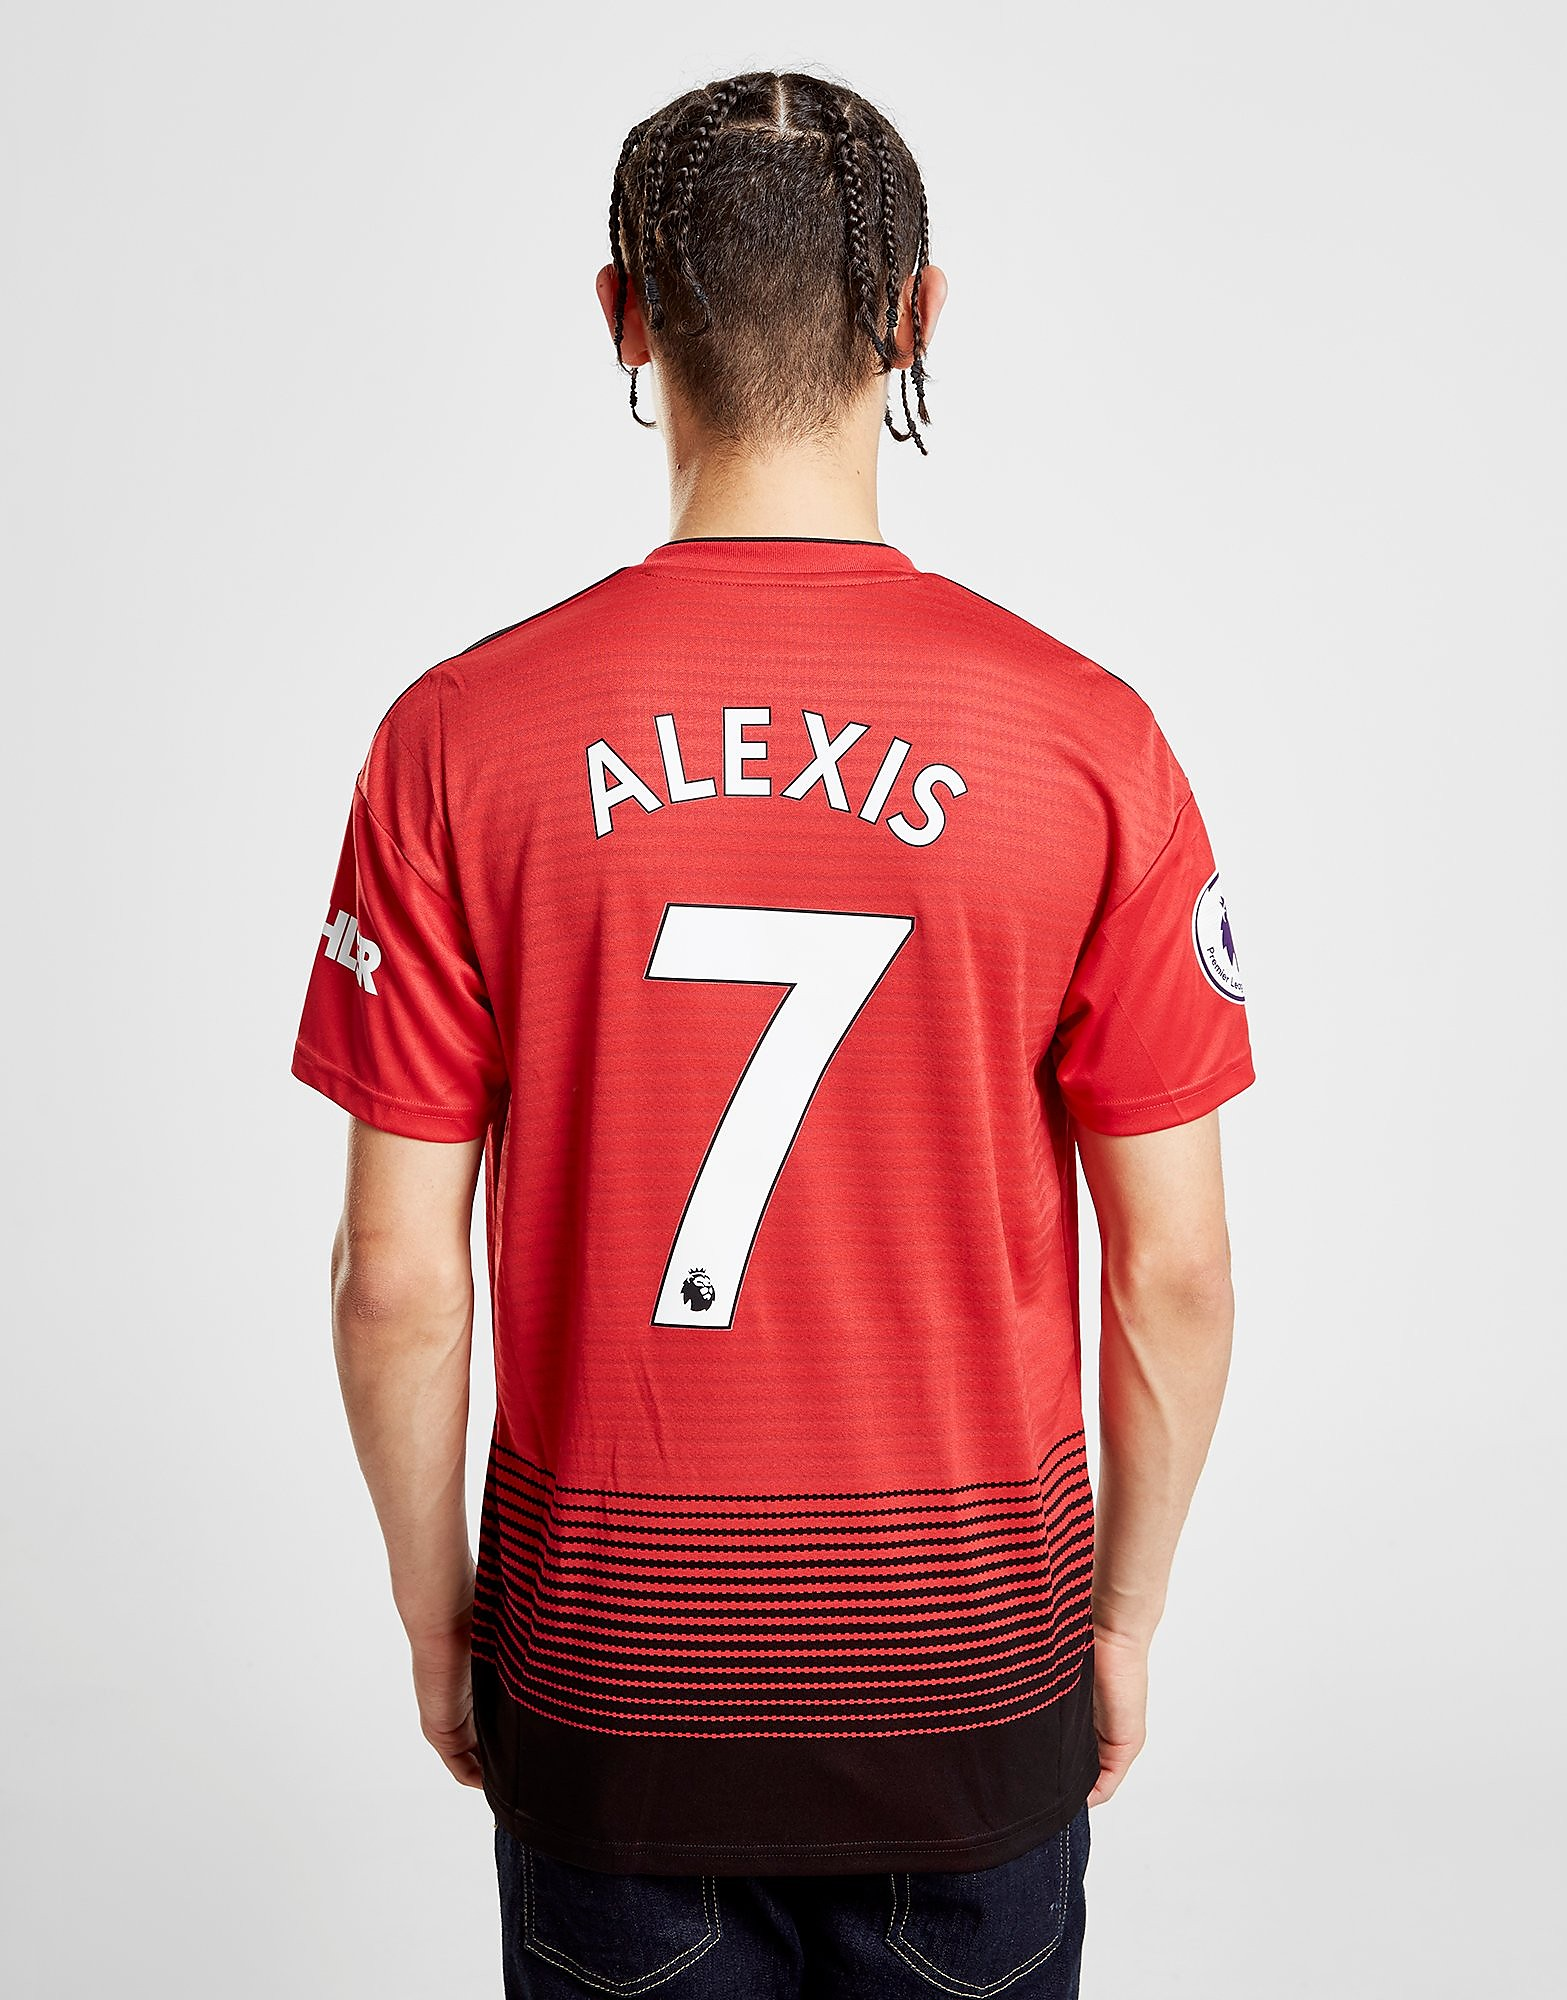 adidas Manchester United FC 2018/19 Alexis #7 Home Shirt - Rood - Heren